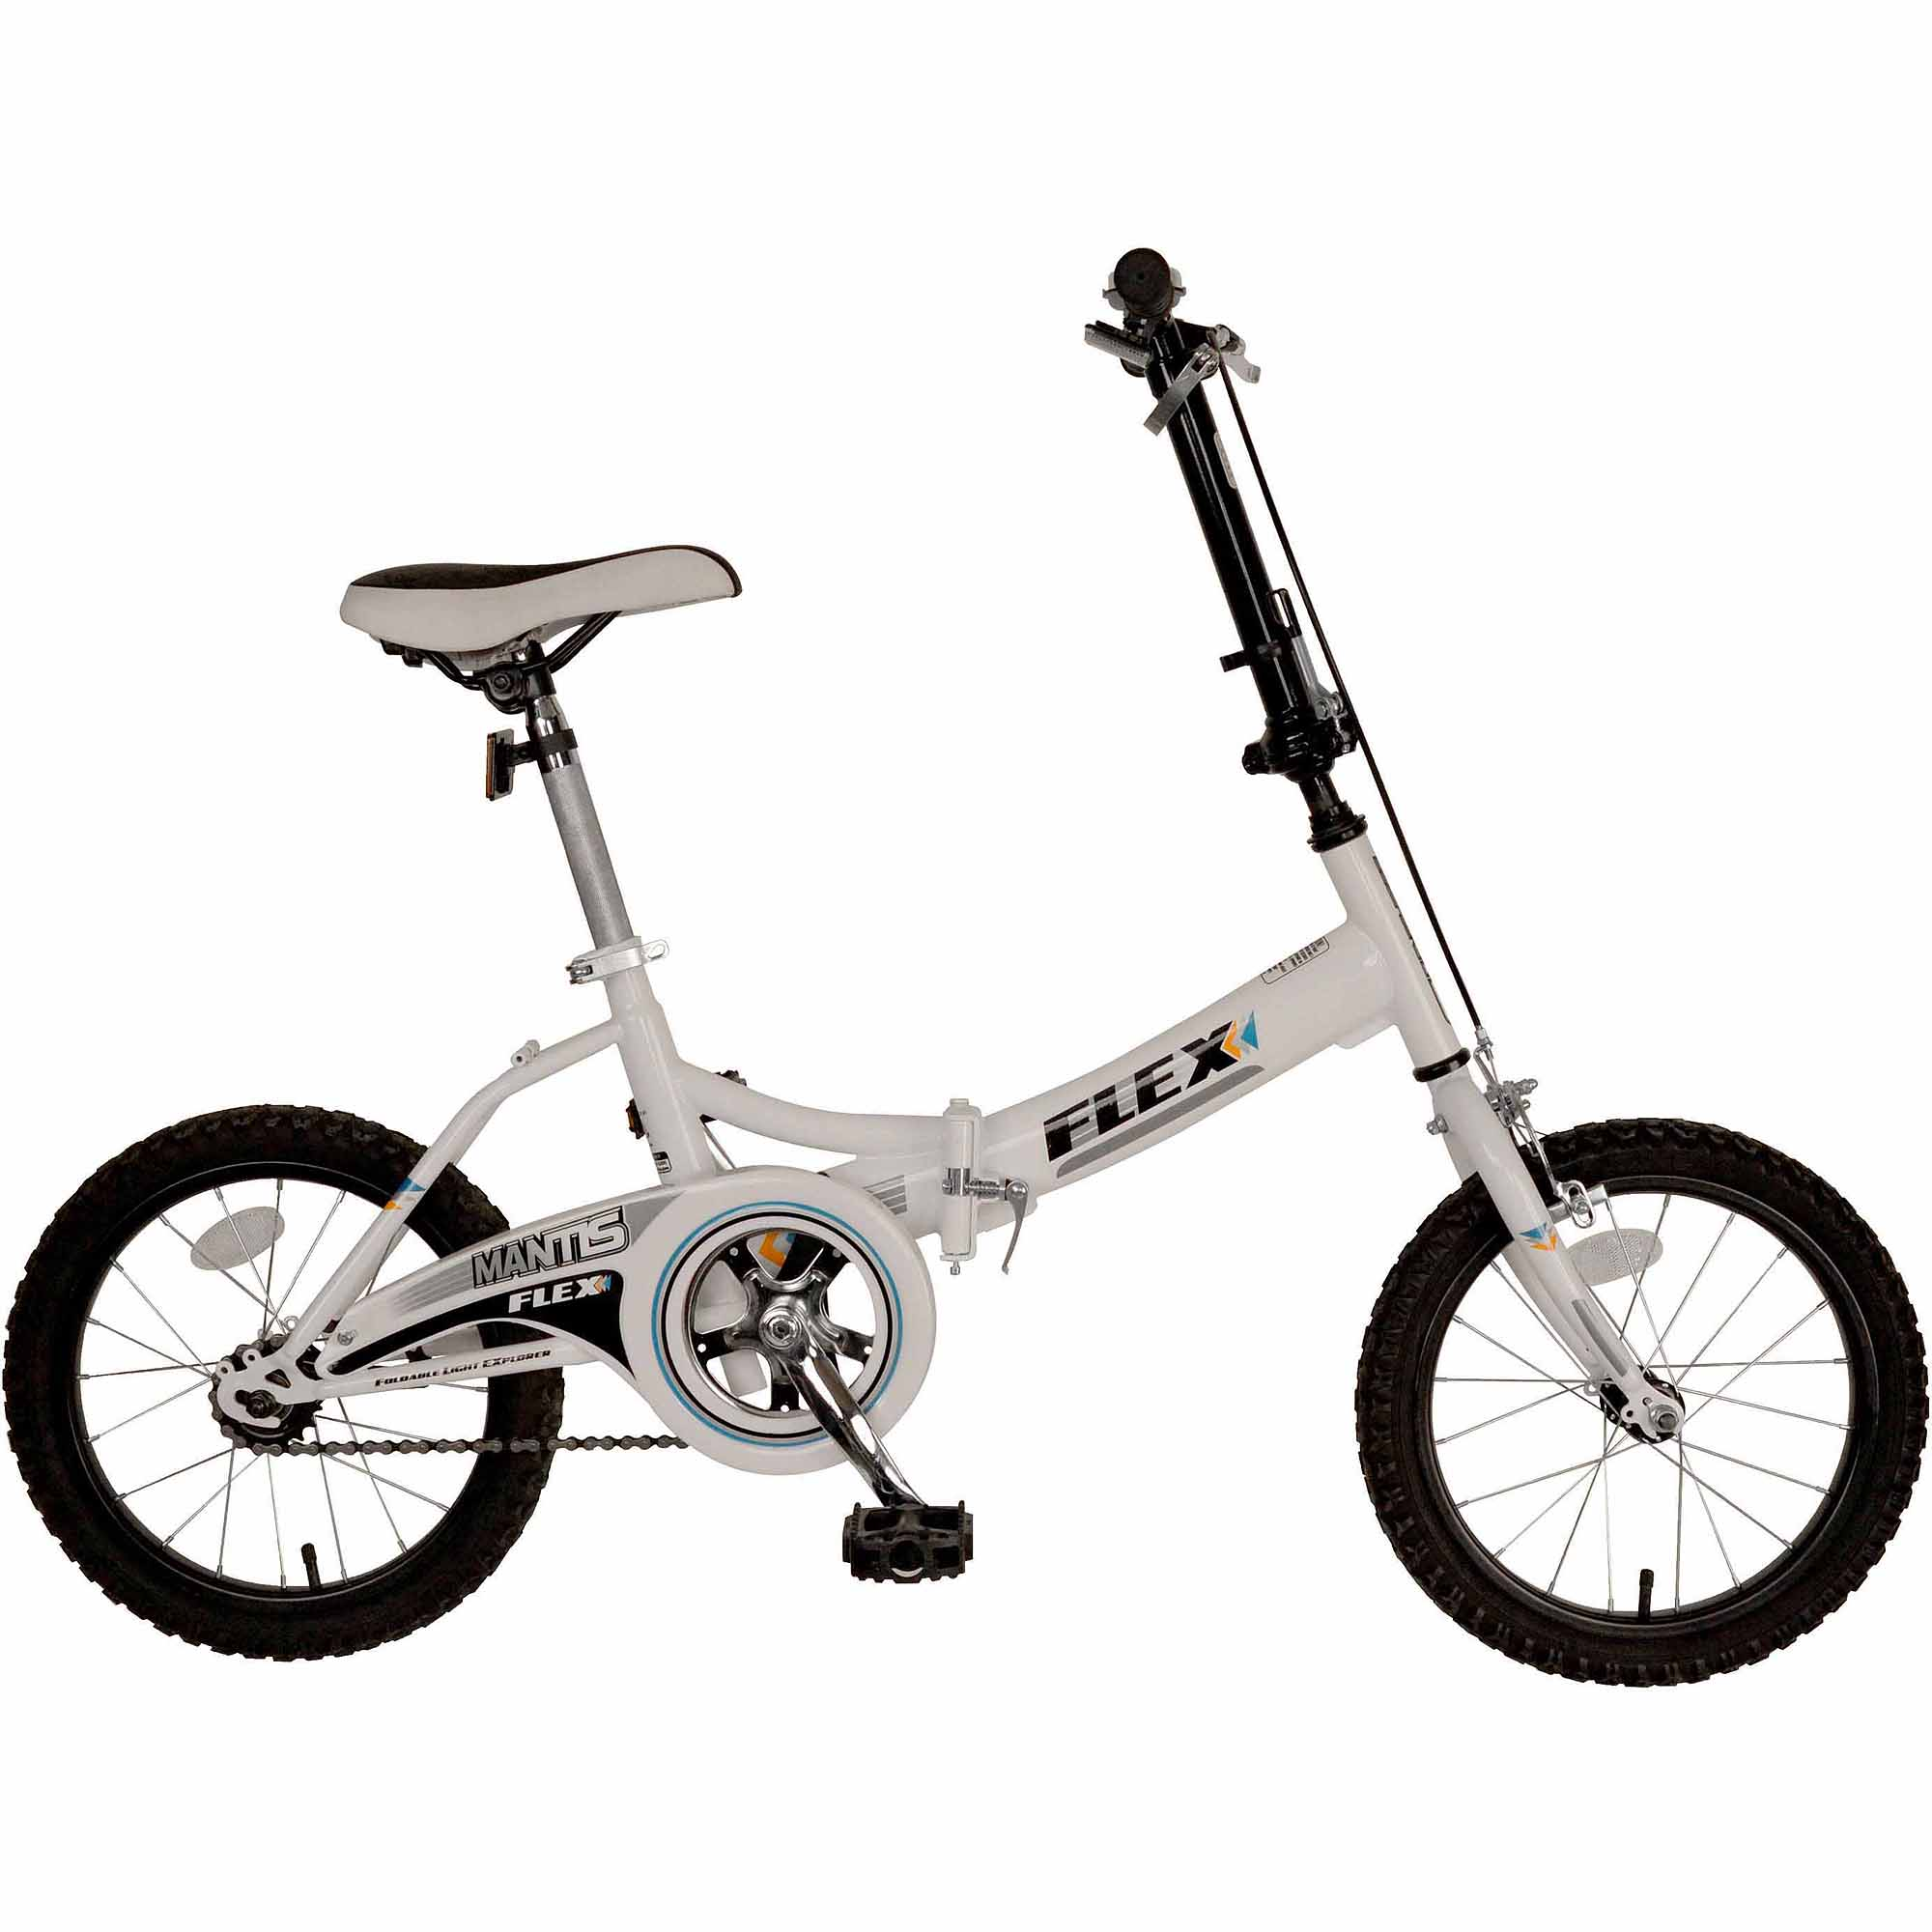 Mantis Flex Folding Bike